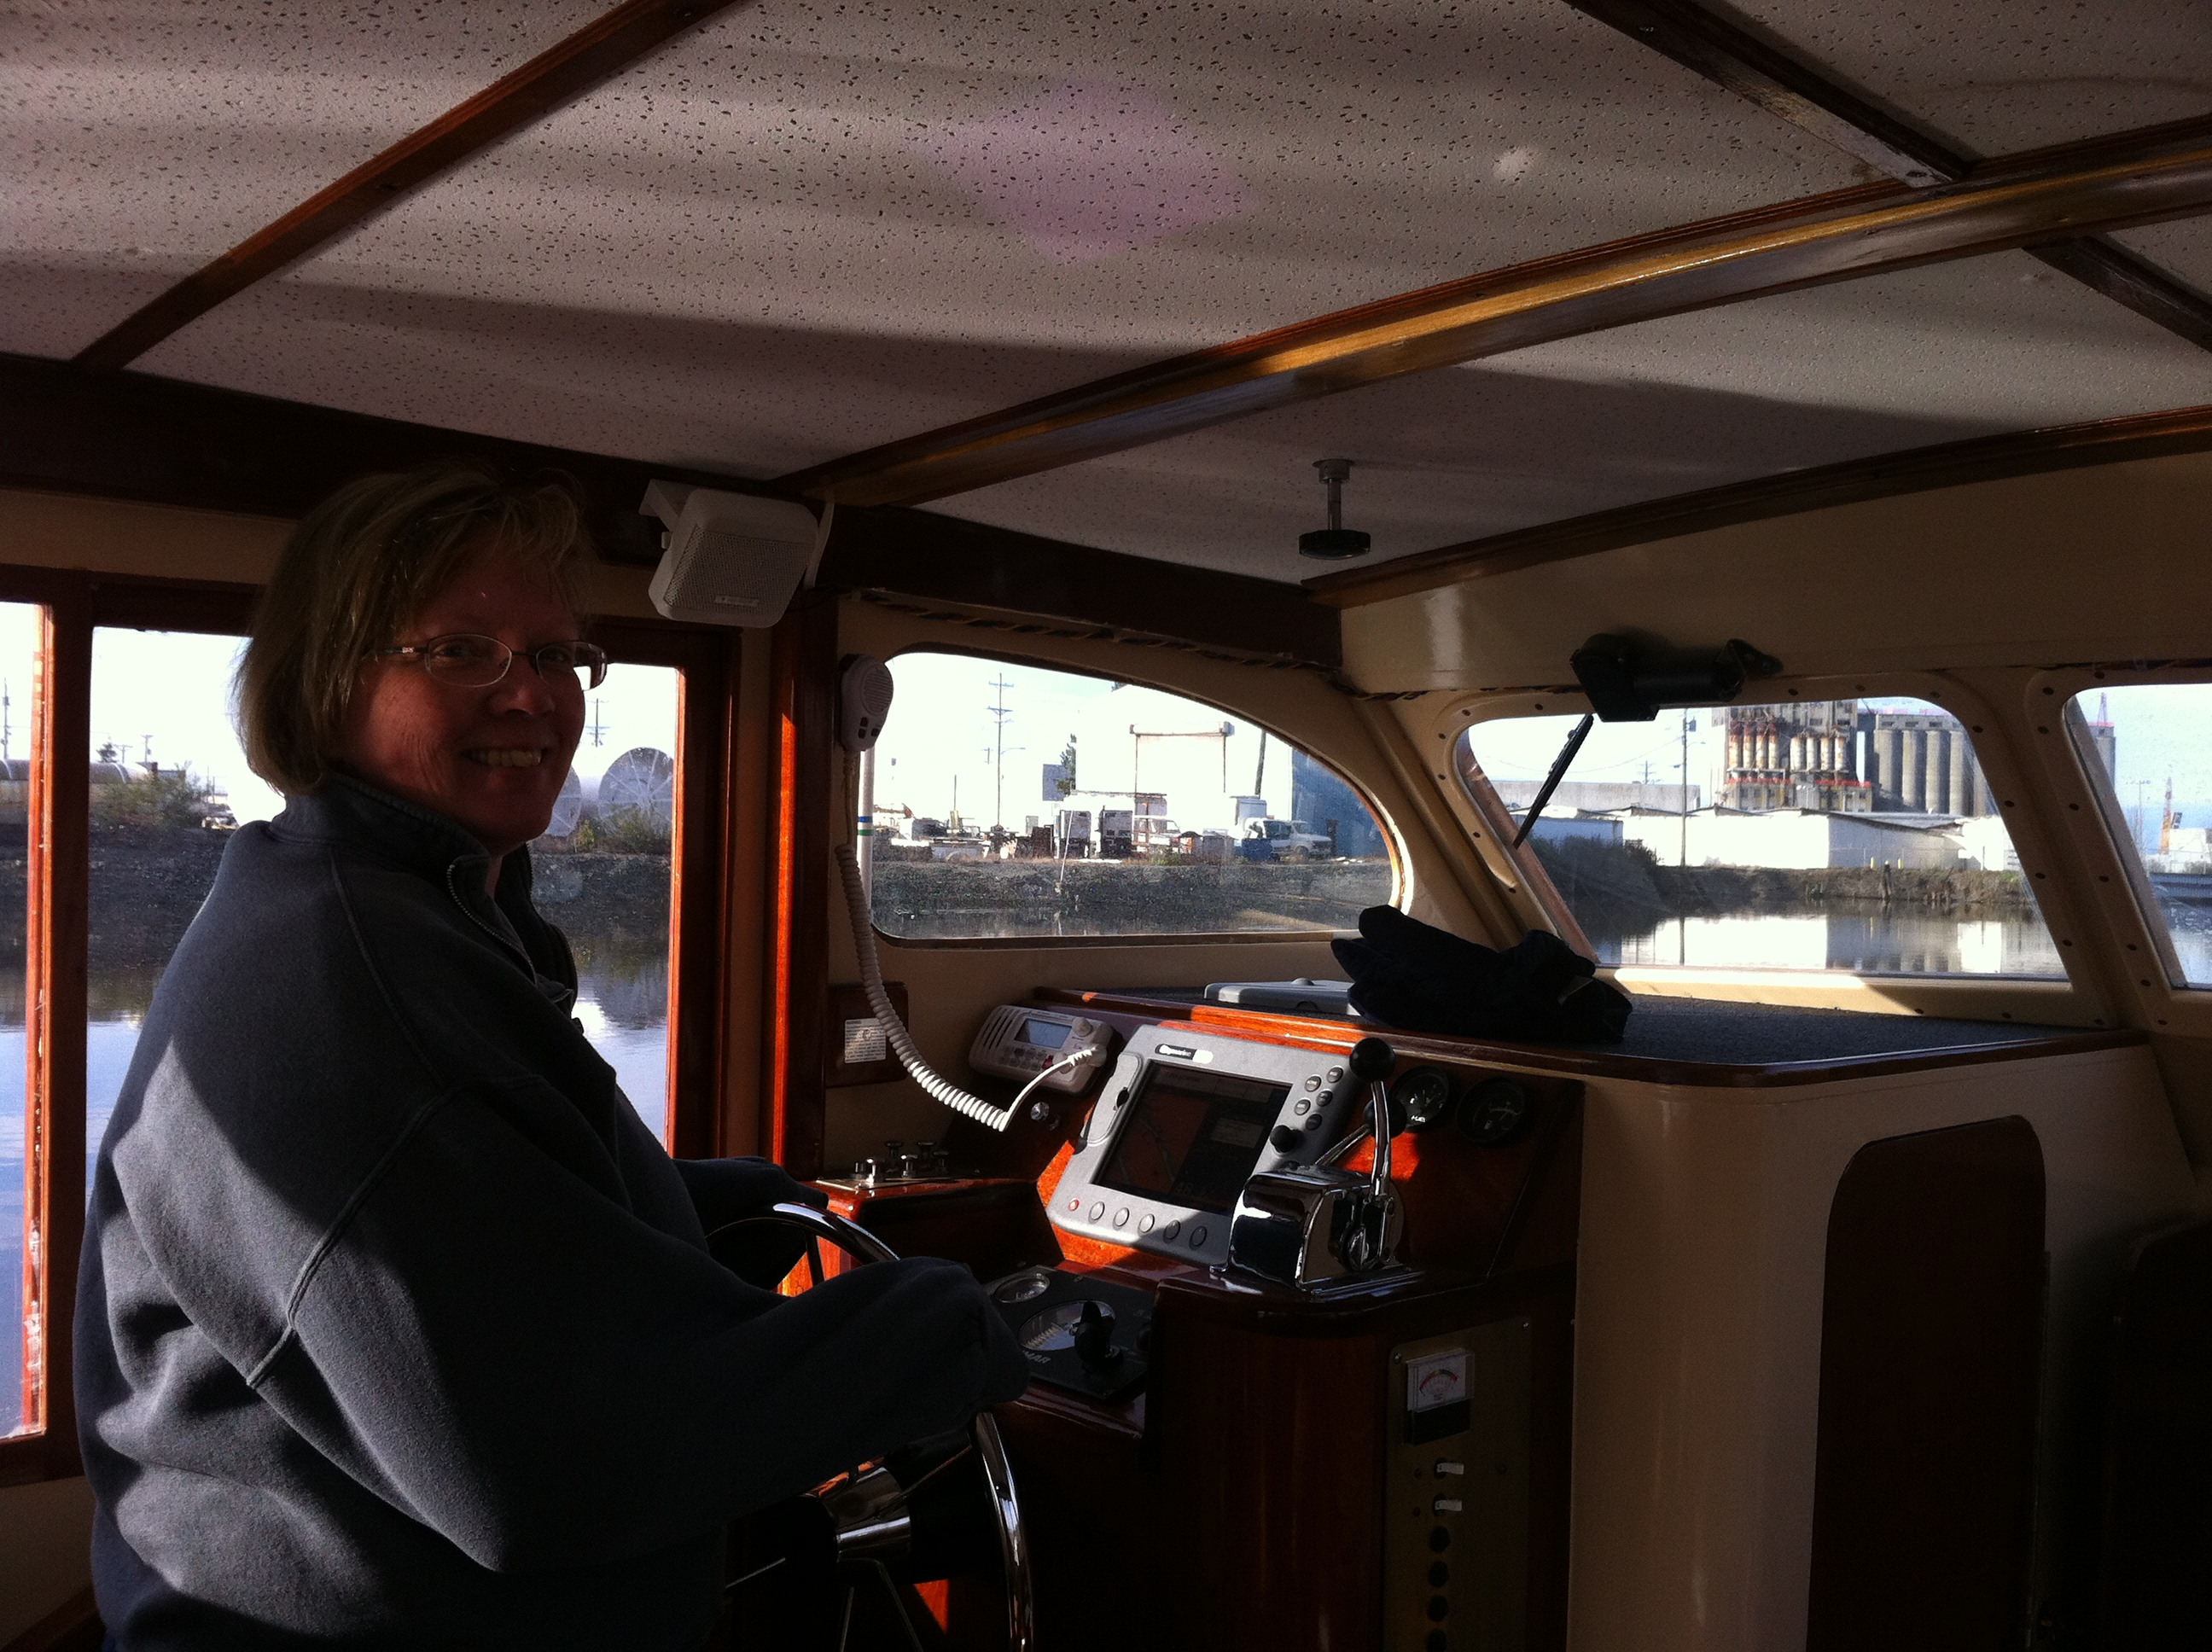 Renee takes us out of the harbor and into the bay